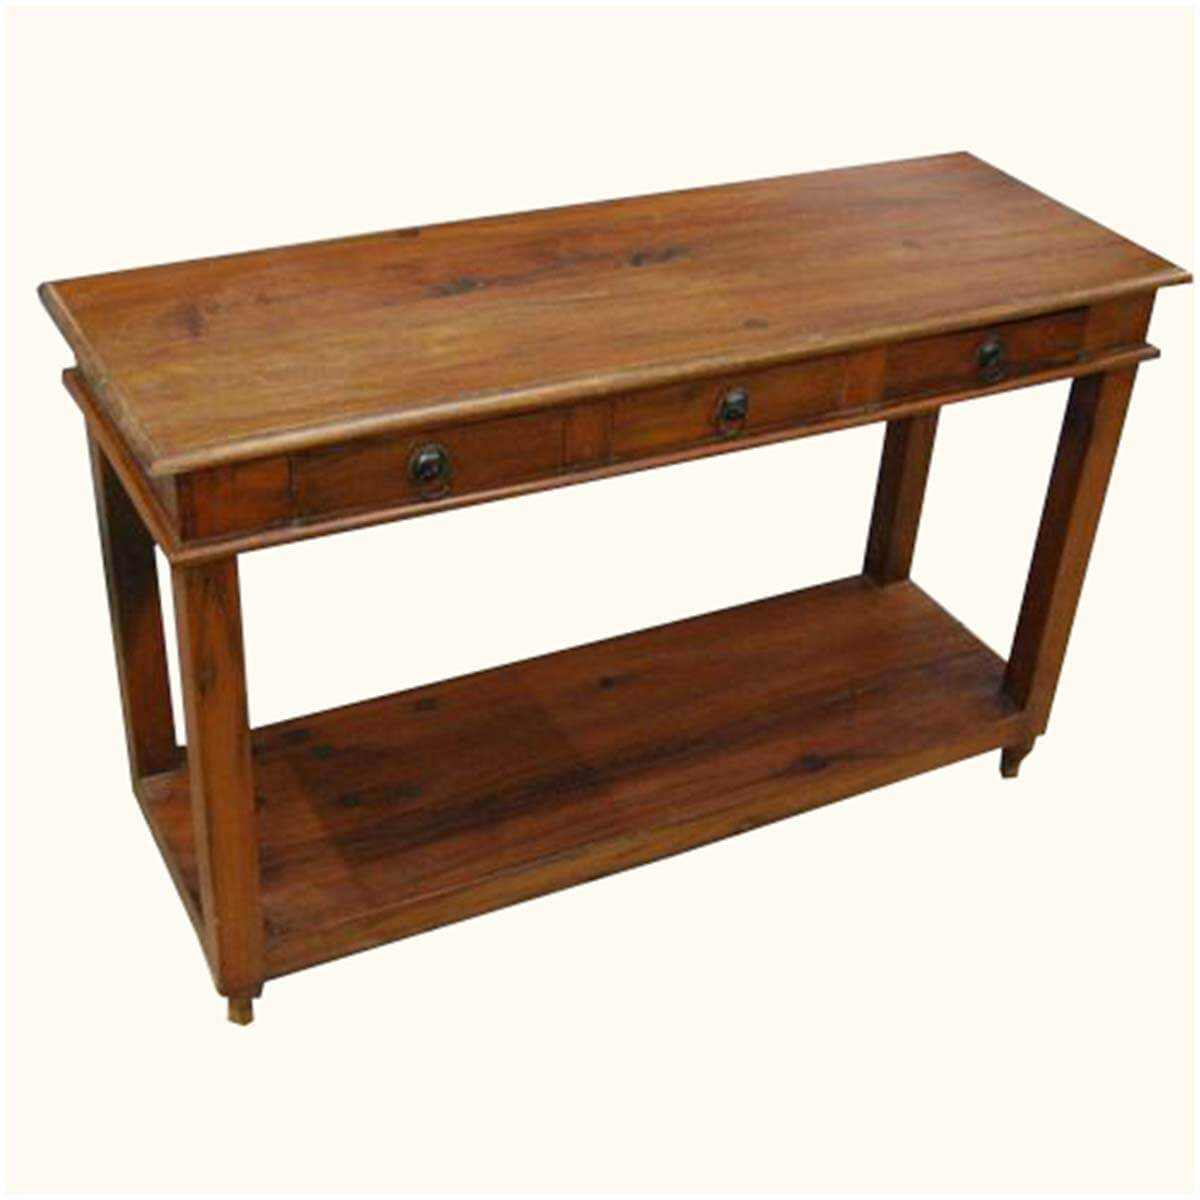 Foyer Table Cabinet : Solid wood entry sofa hall console foyer table w drawers